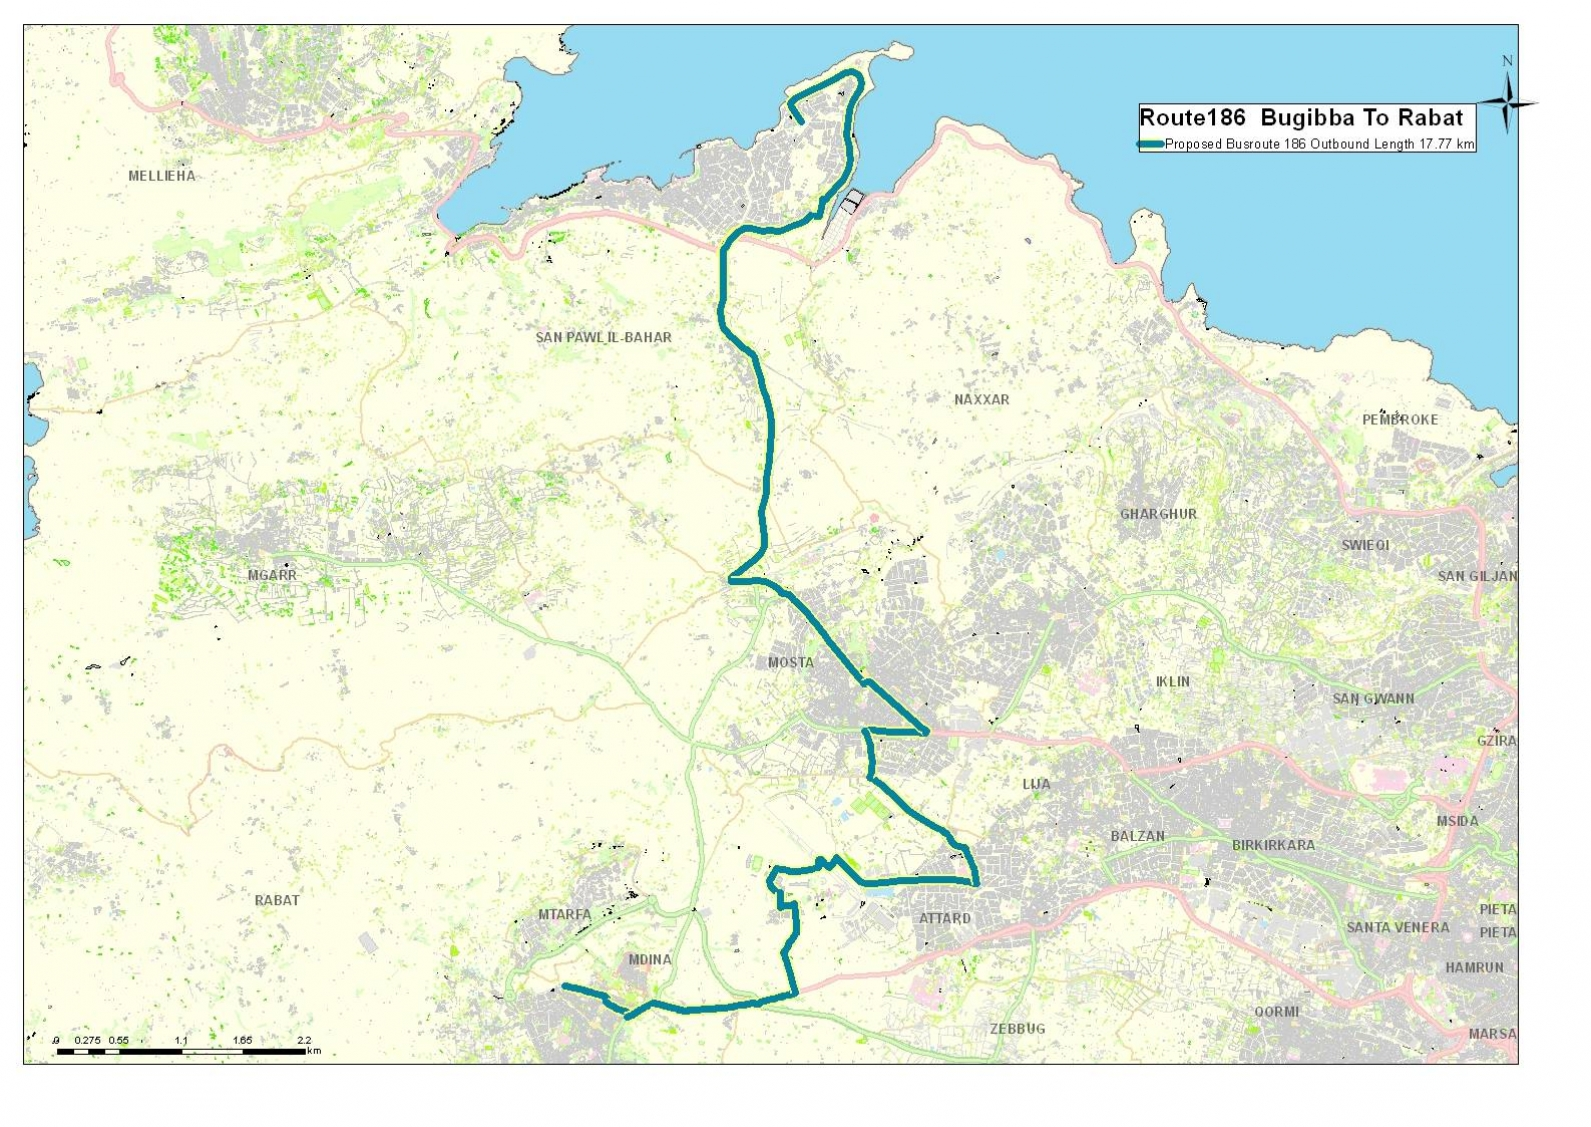 Land-current-network-routes-and-schedules-Dingli-Mtarfa-Rabat-19